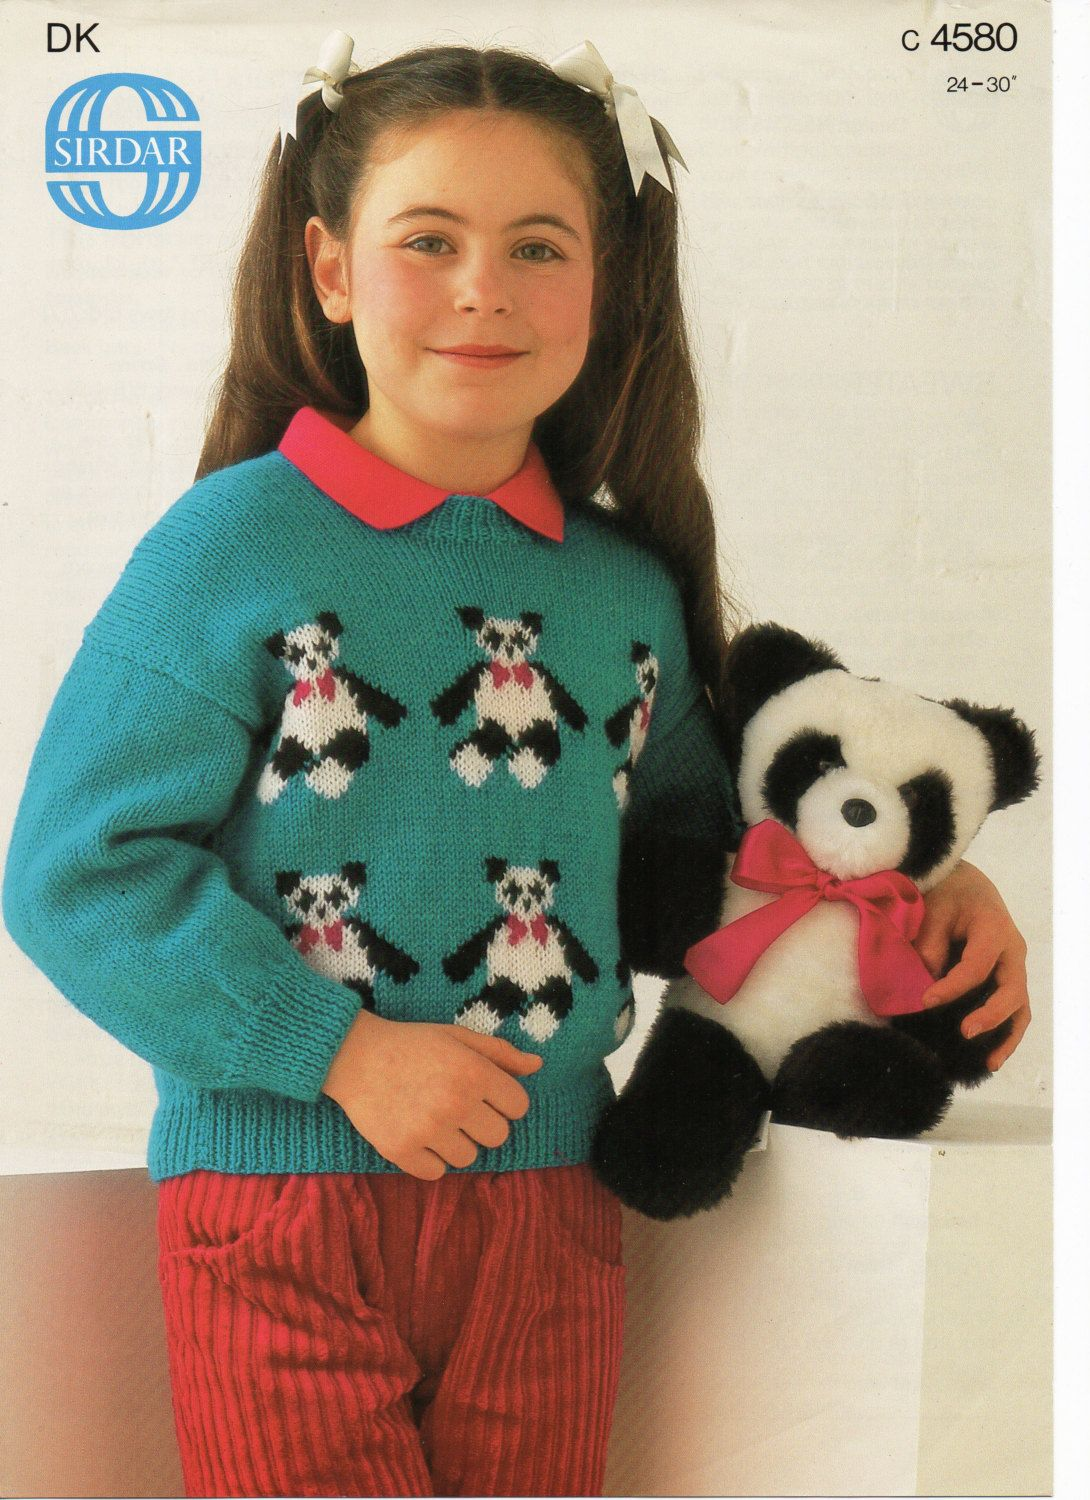 Childrens knitting pattern childrens panda motif sweater childrens childrens knitting pattern childrens panda motif sweater childrens panda jumper 24 30 inch dk childs bankloansurffo Image collections